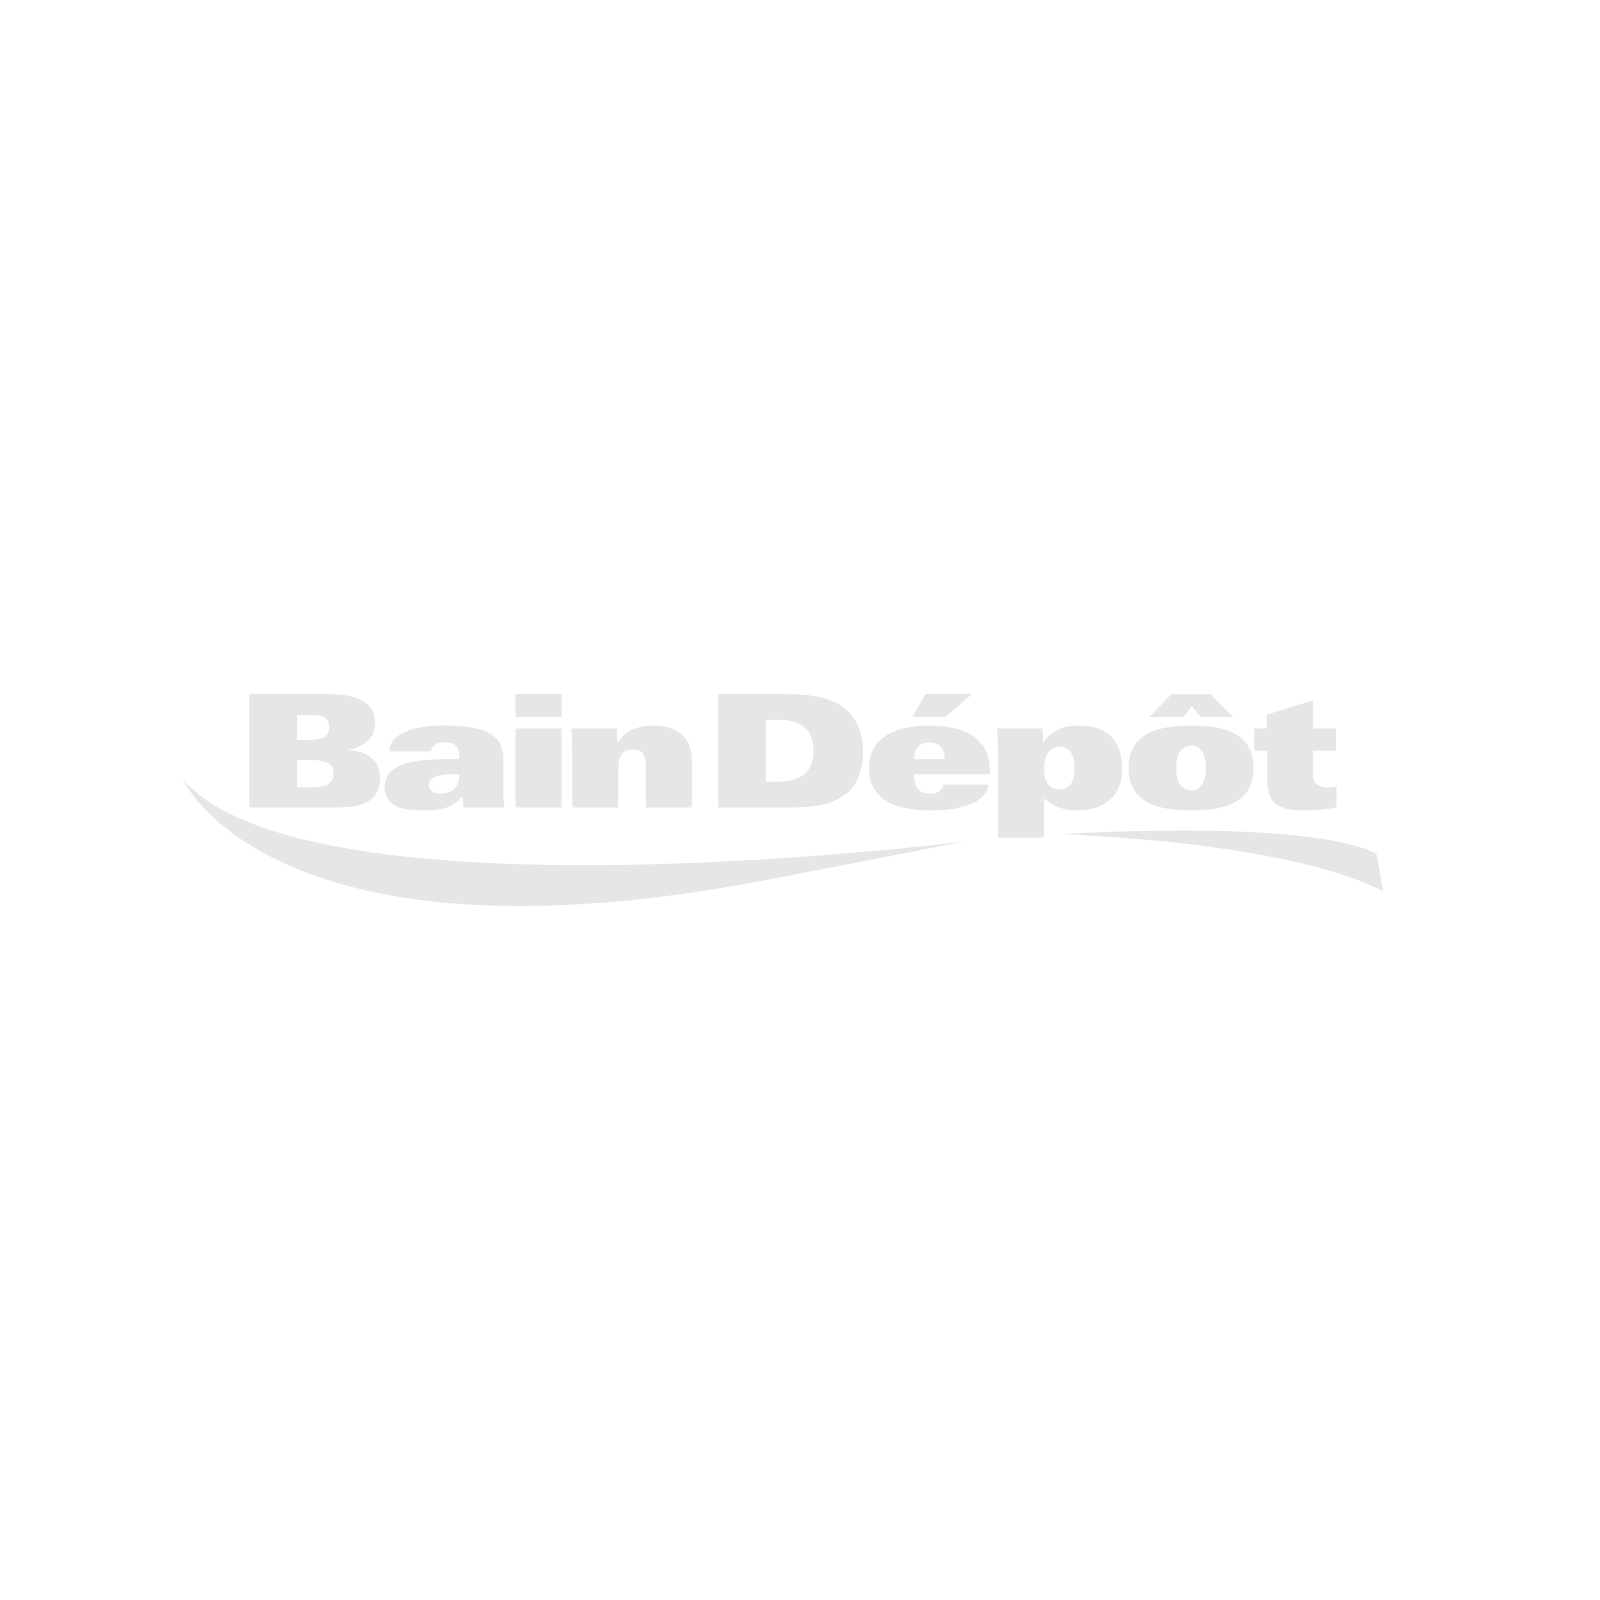 "42"" x 34"" Black rectangular shower base for right corner installation"